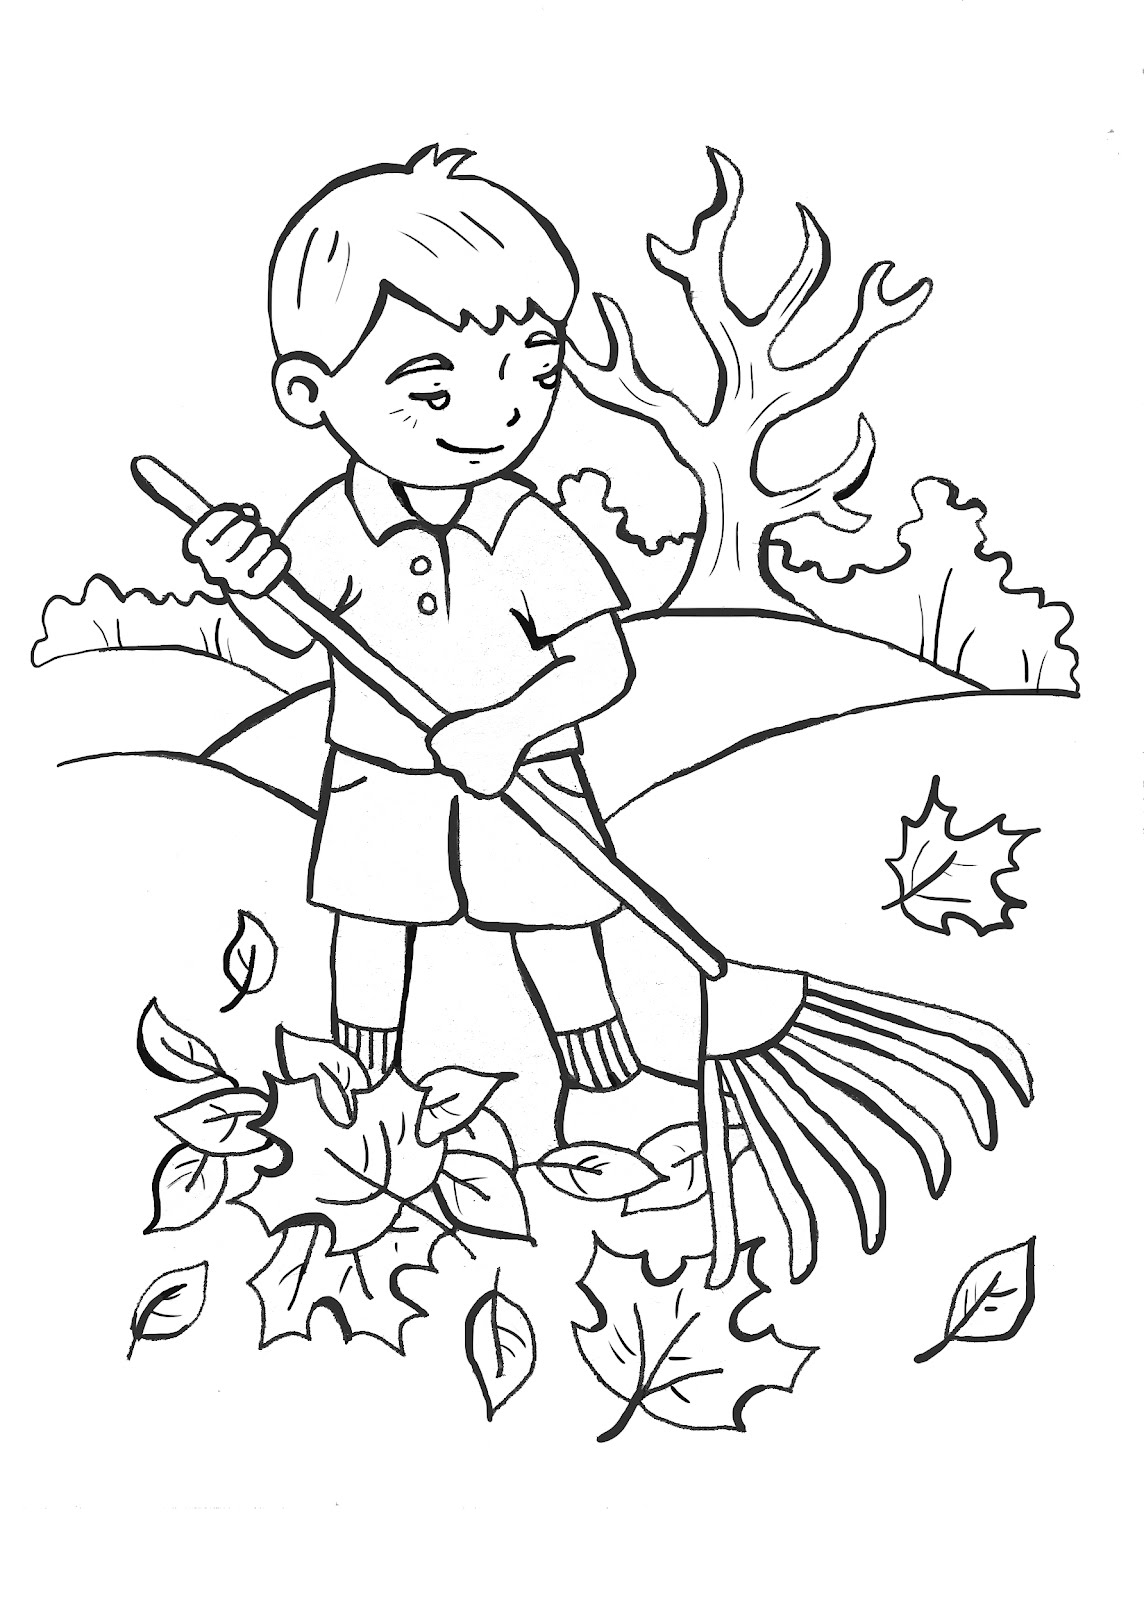 lds coloring pages lds printable clipart clipart suggest pages lds coloring